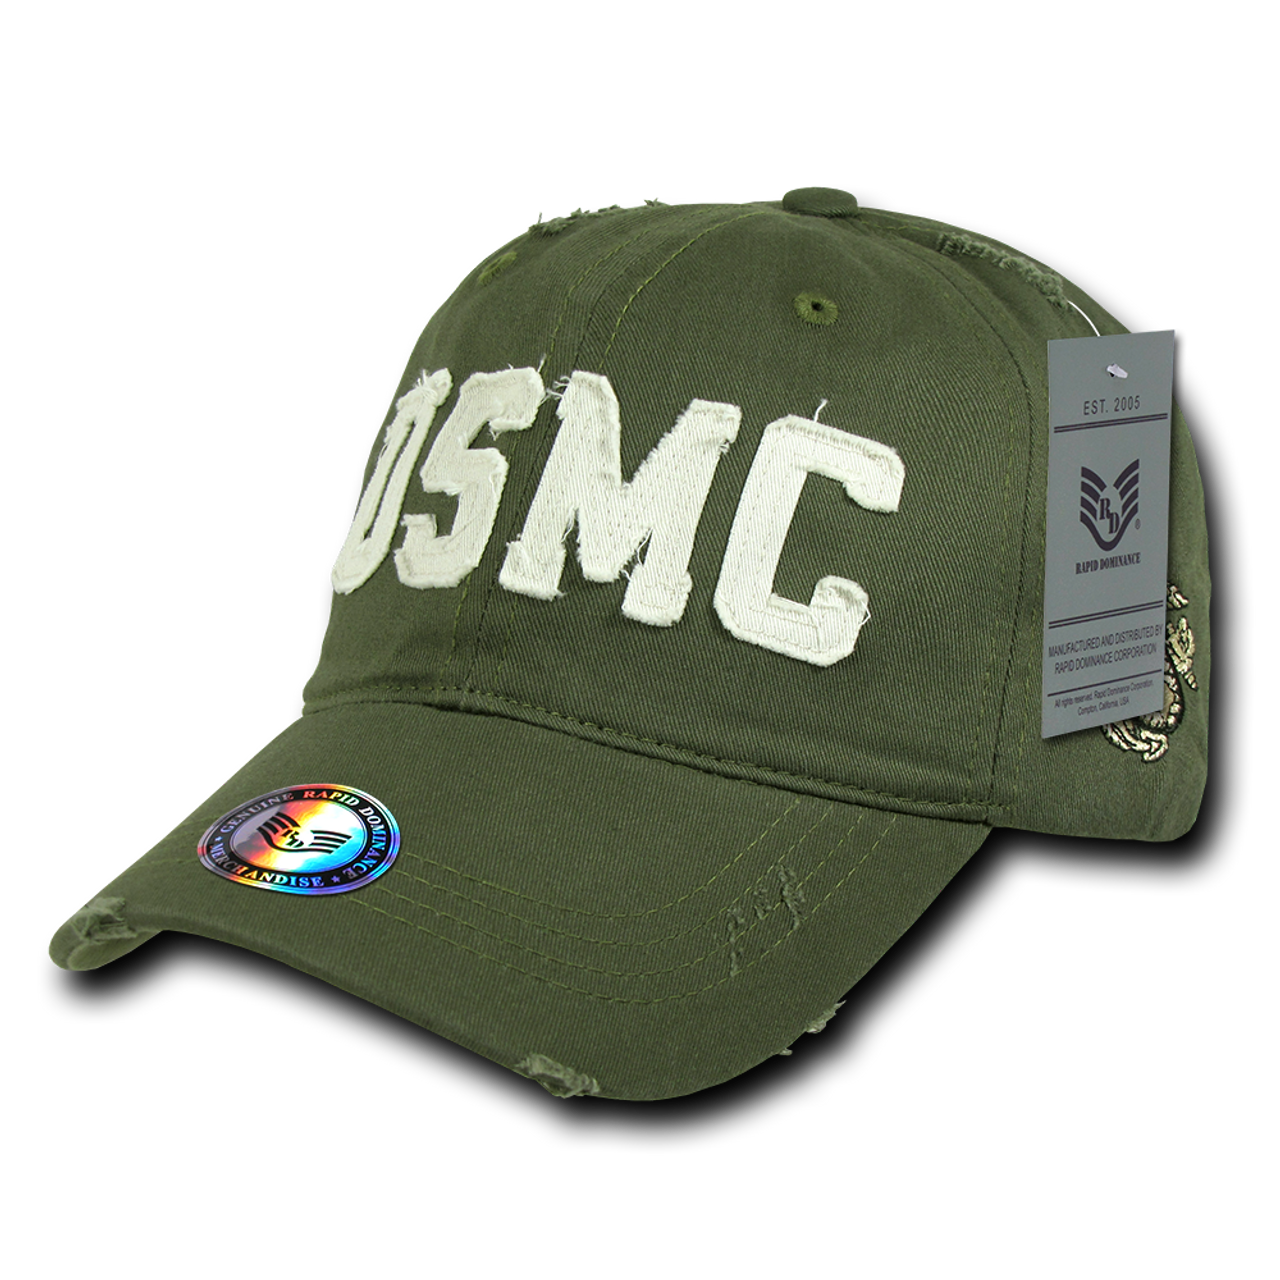 S84 - Vintage U S  Marine Corps Cap - Relaxed Cotton - Olive Drab